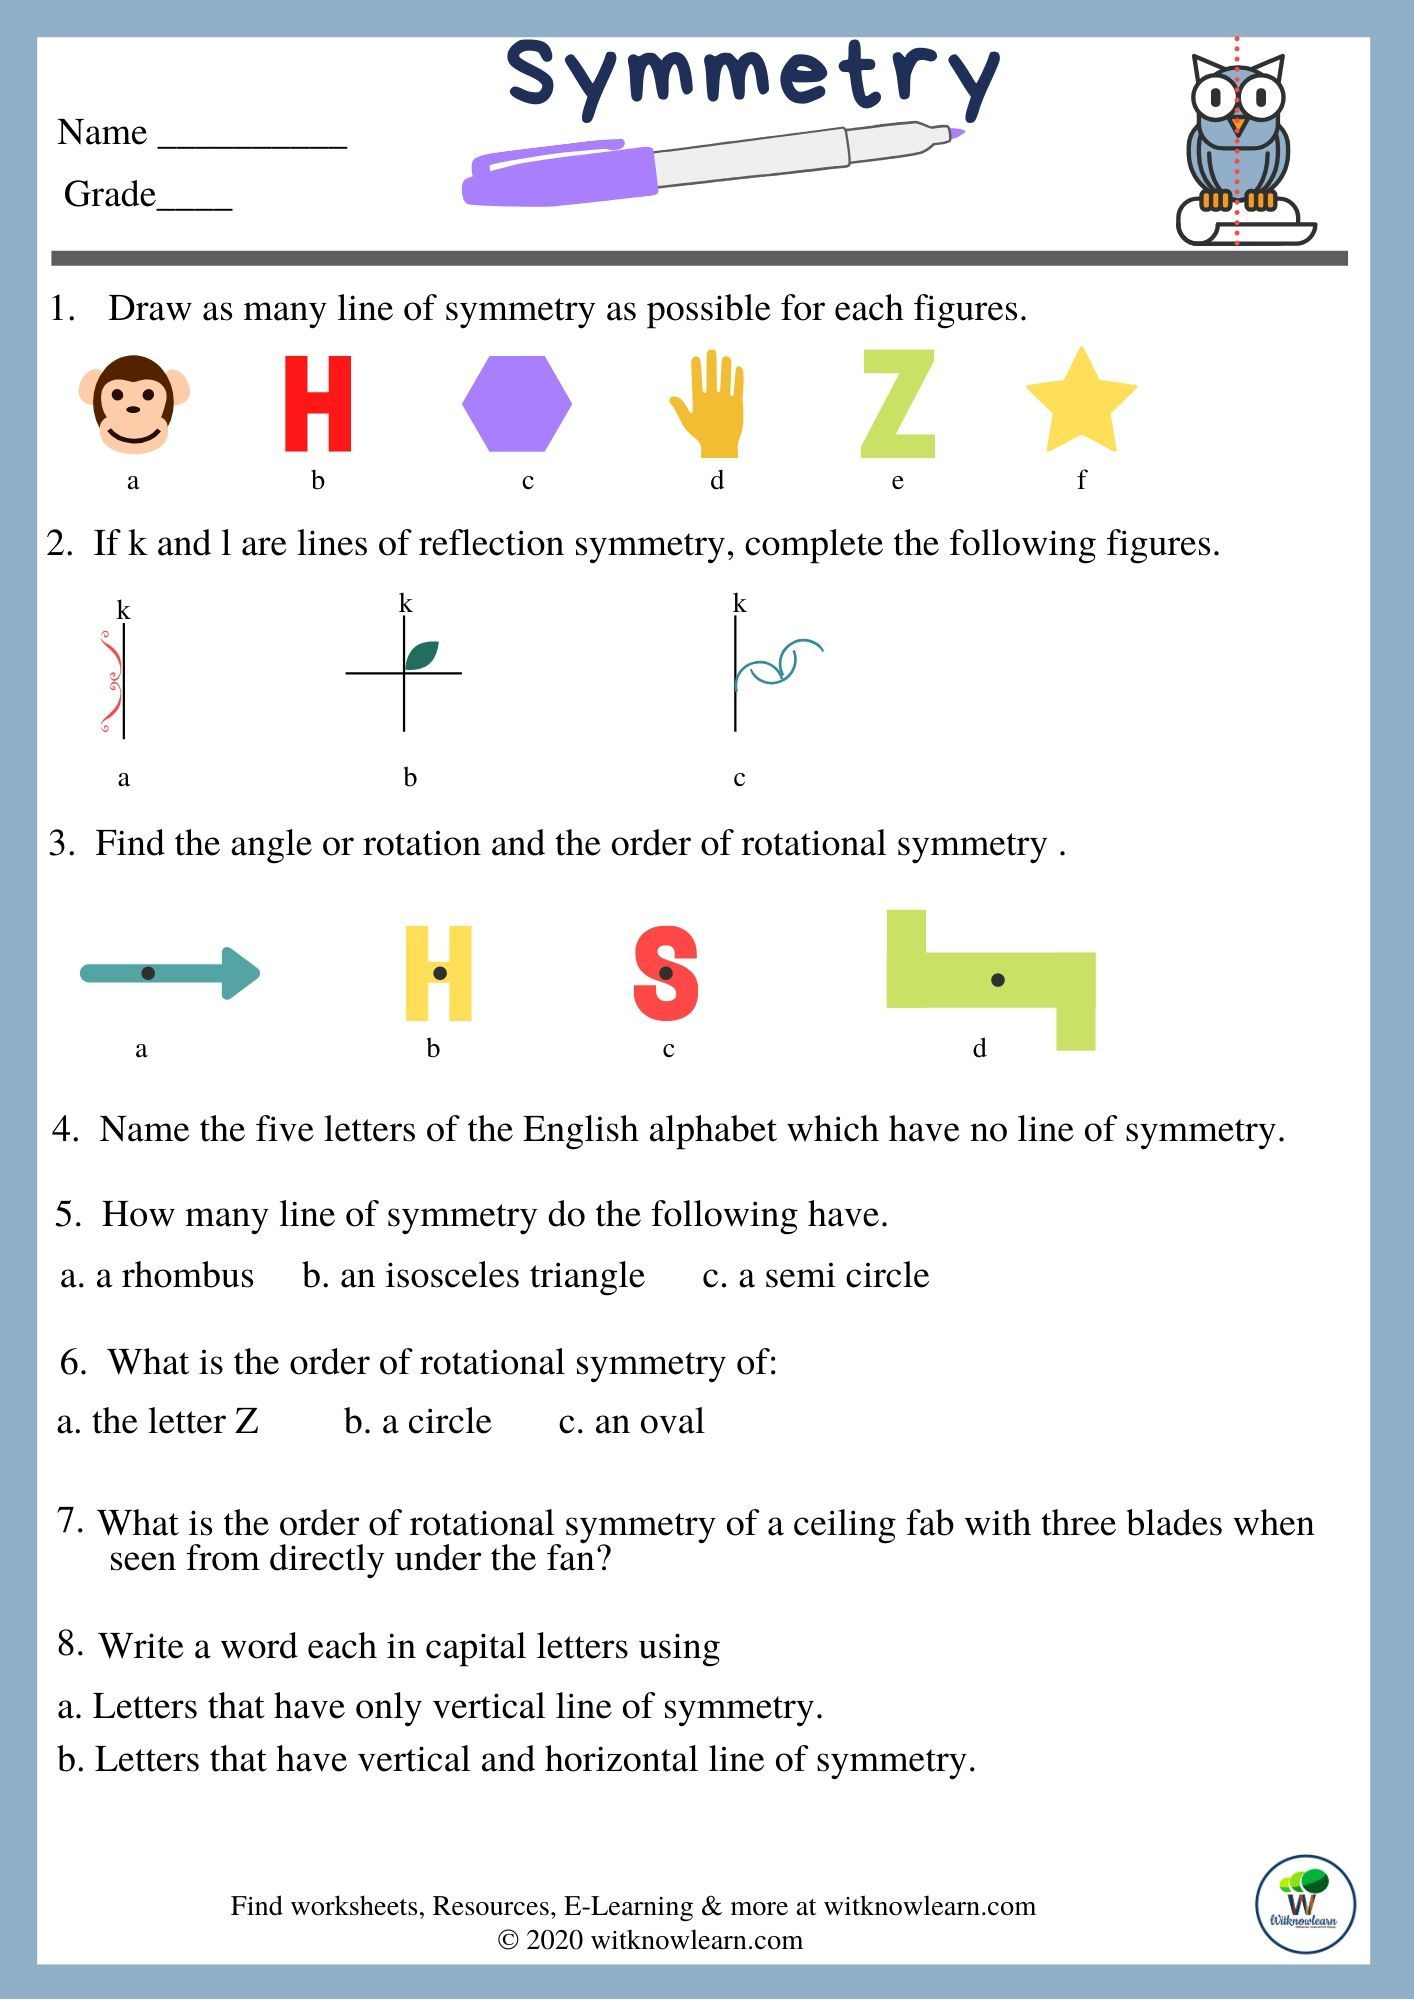 hight resolution of symmetry worksheets for kids   Symmetry worksheets